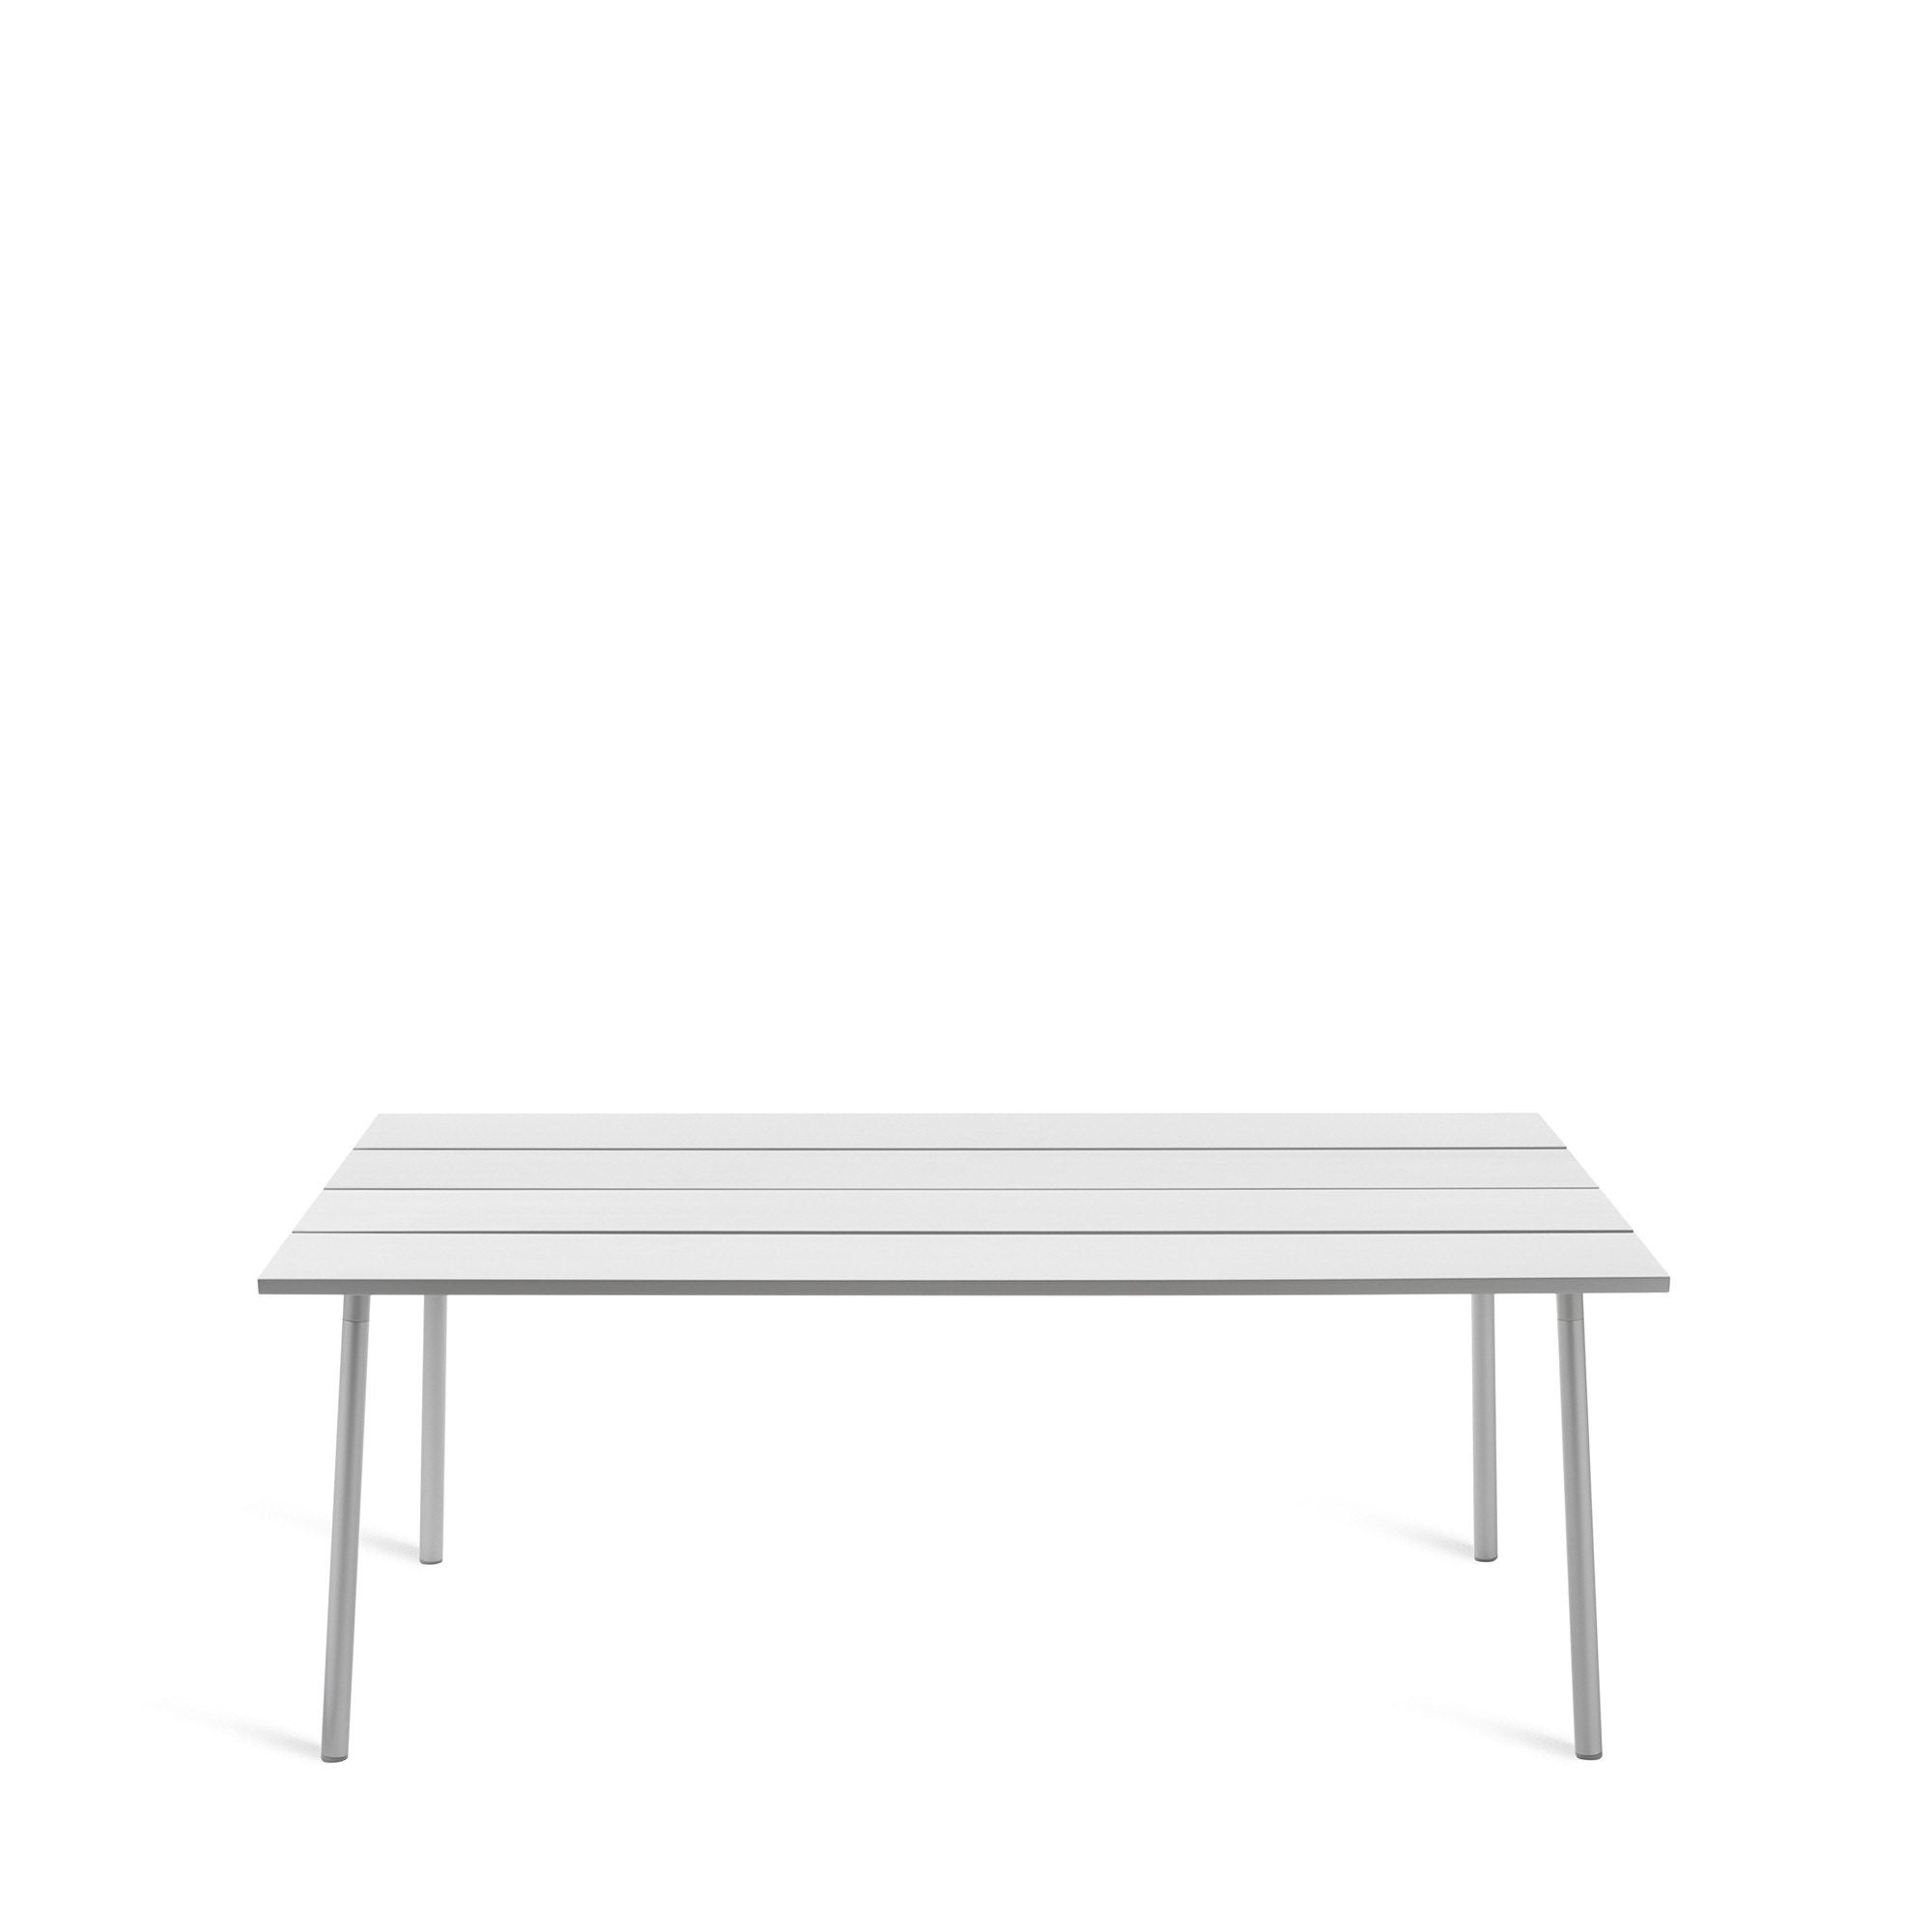 Emeco Run Table 72 Inch